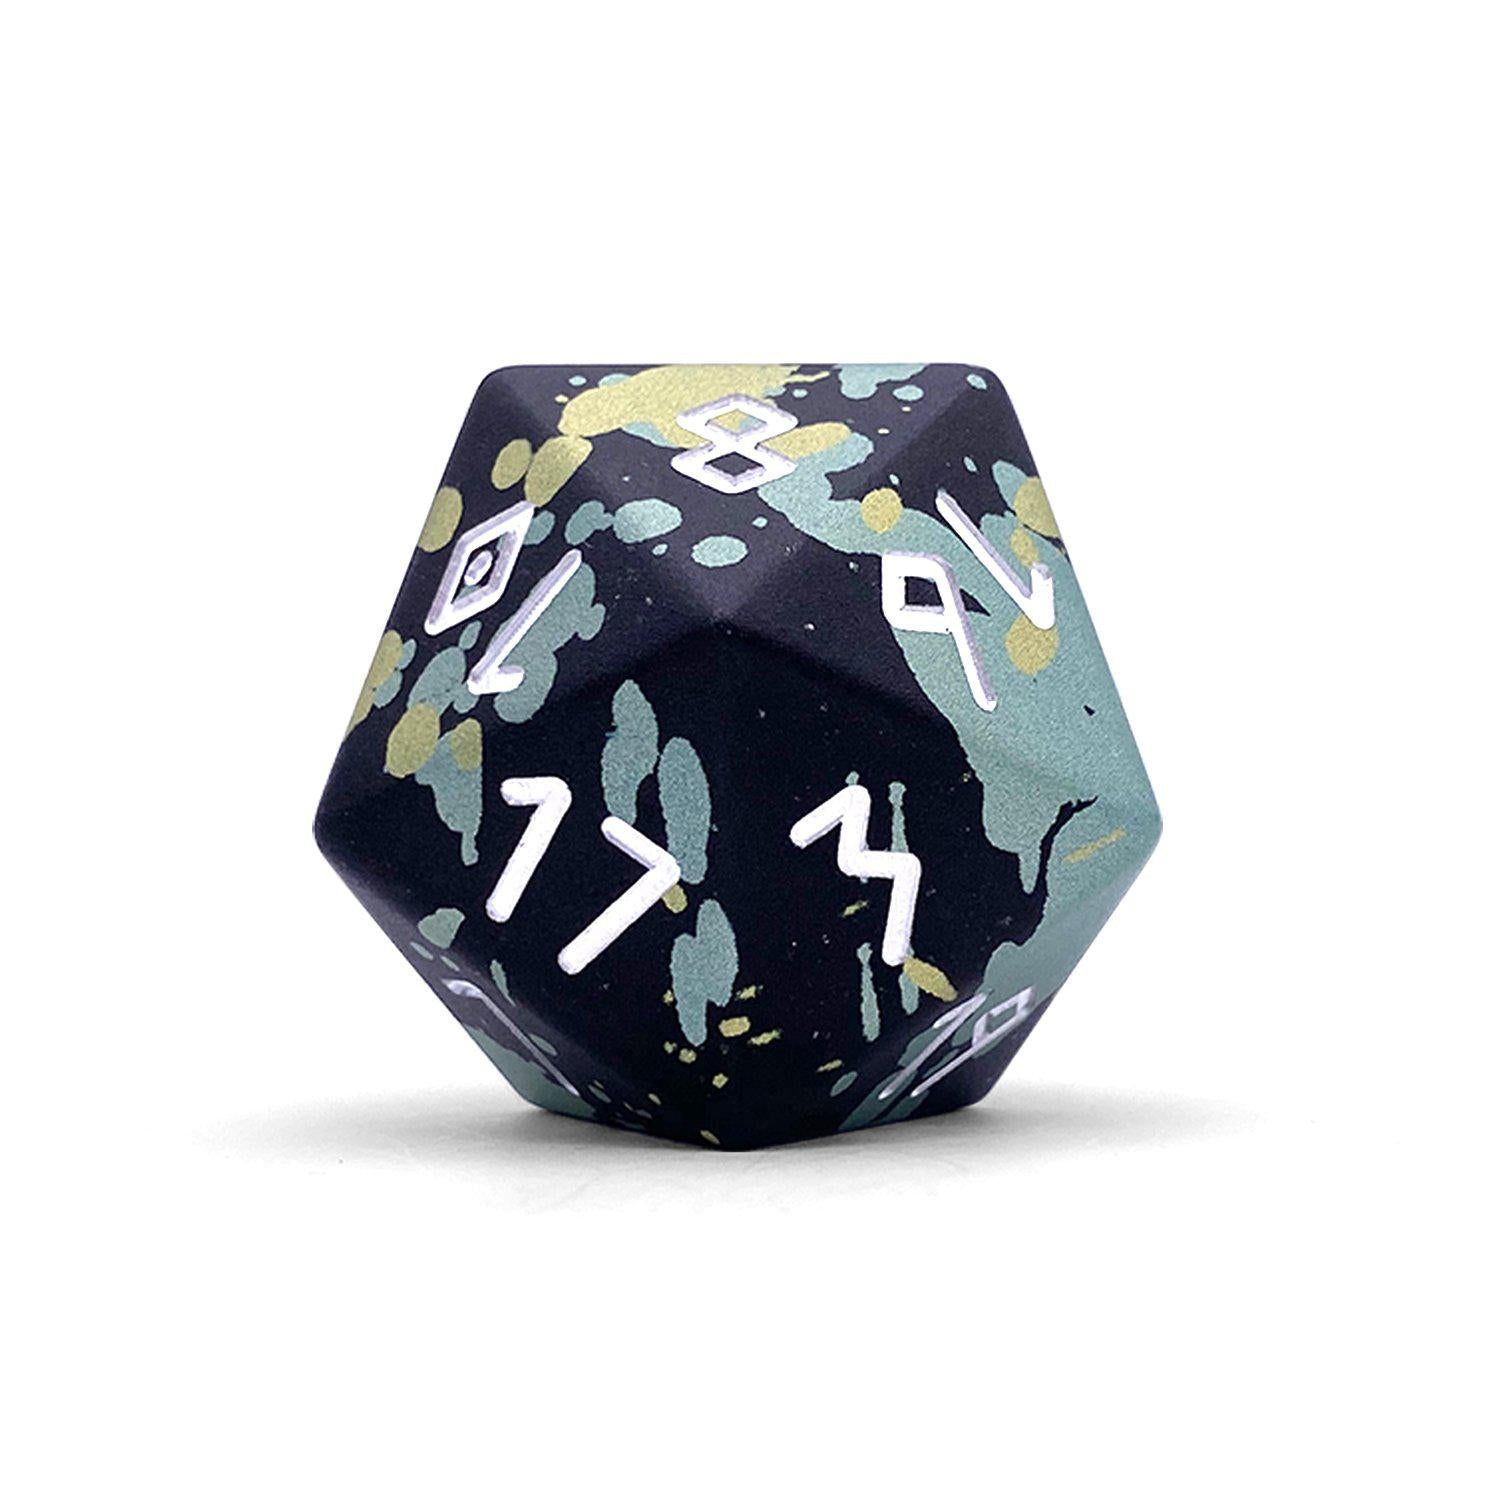 Single Wondrous Dice® D20 in Lizardman by Norse Foundry